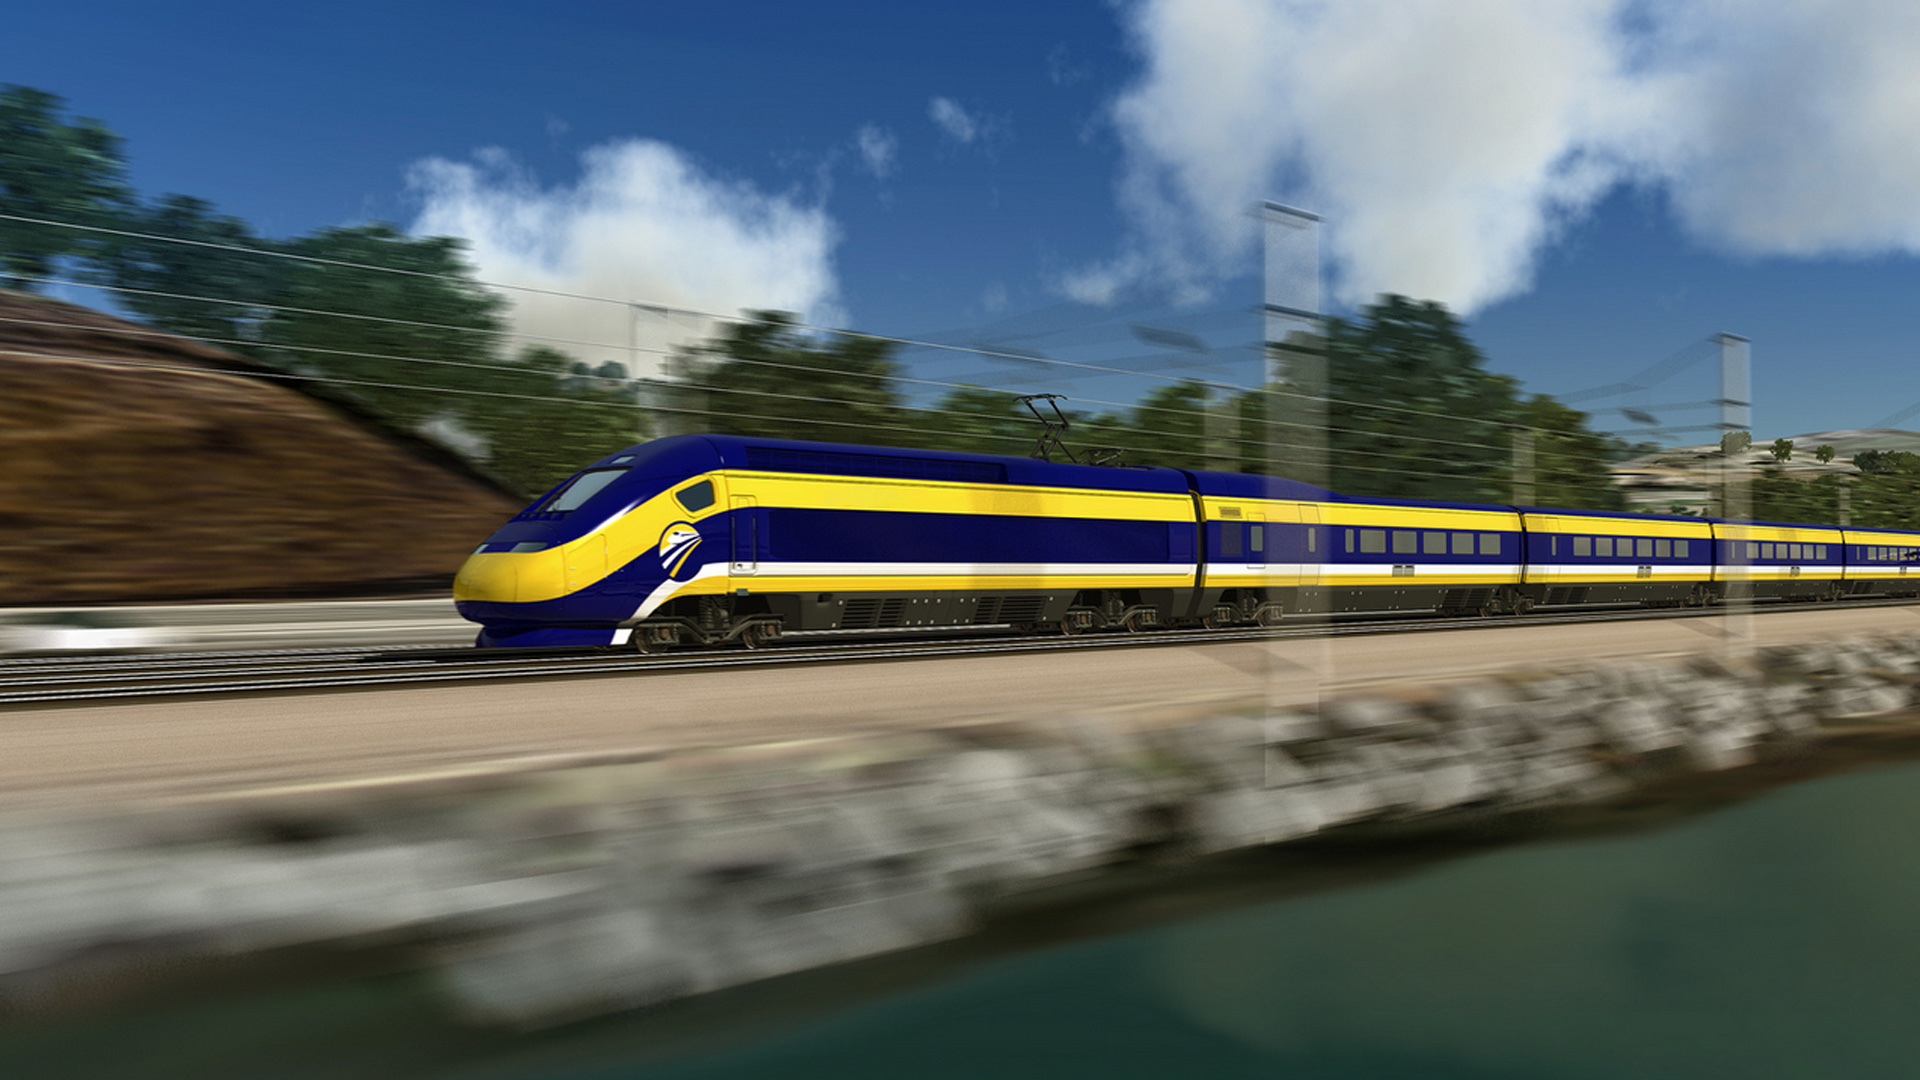 An artist's rendition of the planned bullet train is seen in this image from the California High-Speed Rail Authority.